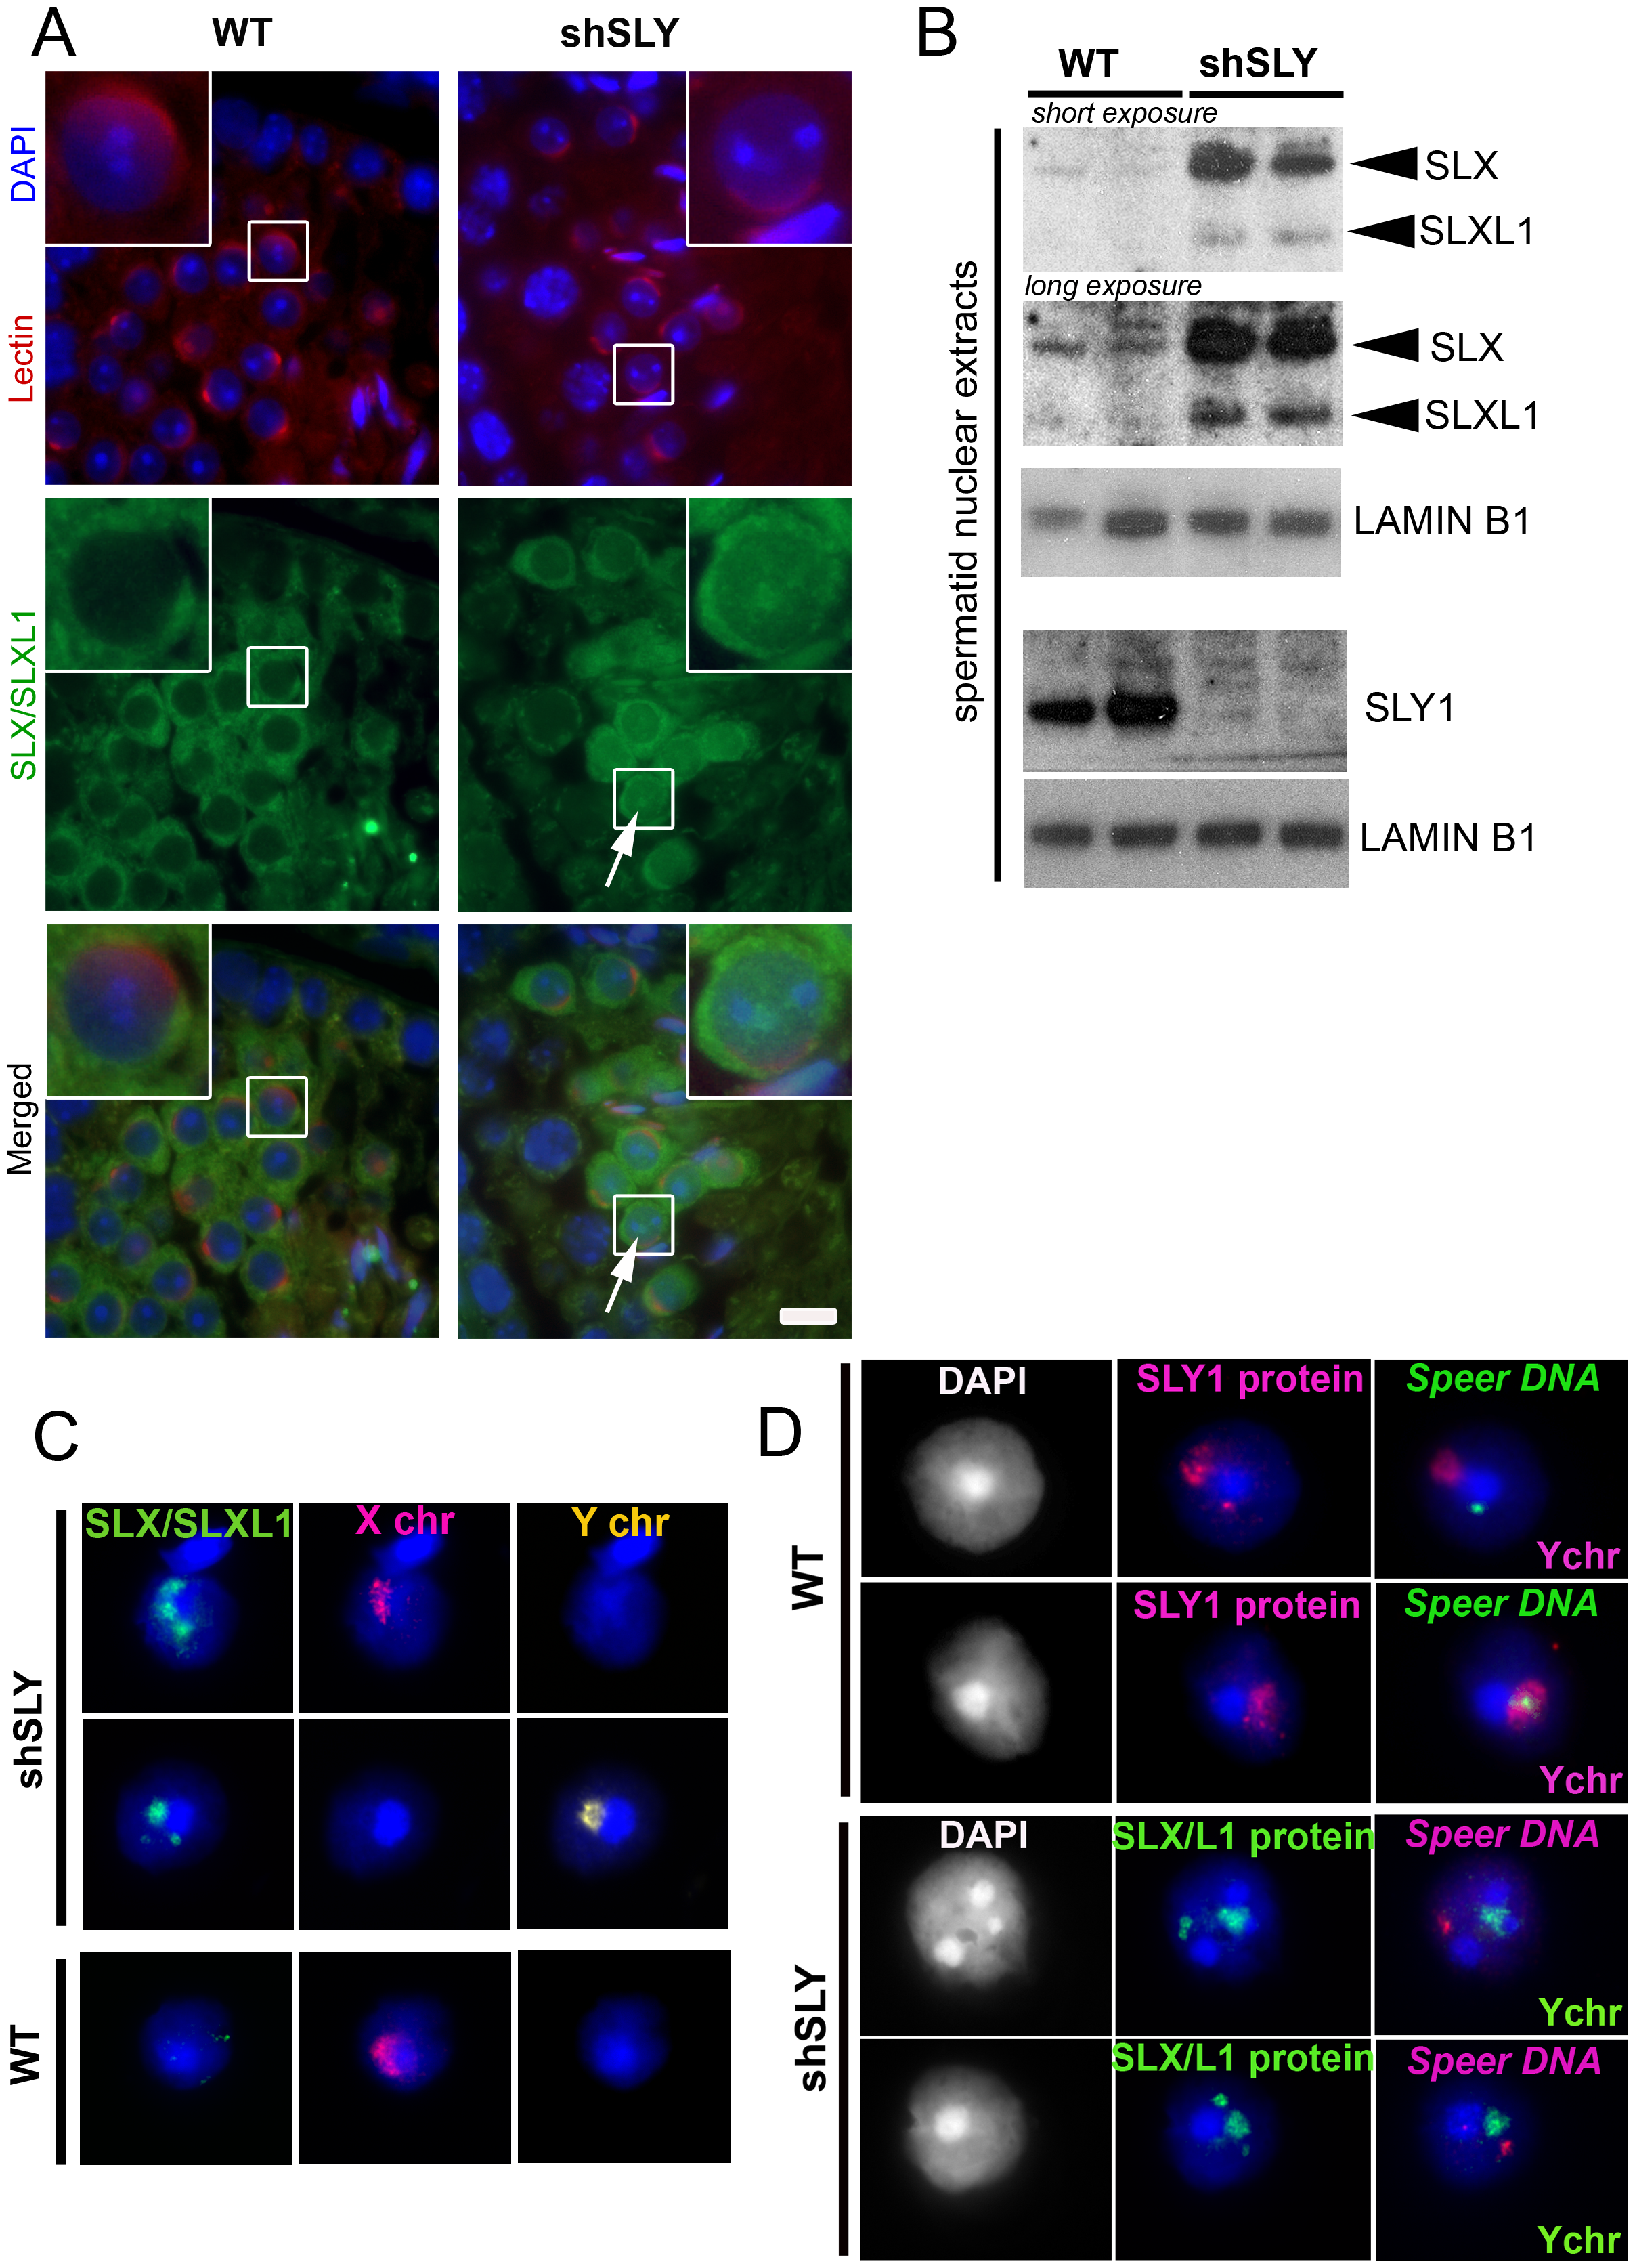 SLX/SLXL1 proteins behave similarly to SLY in its absence.